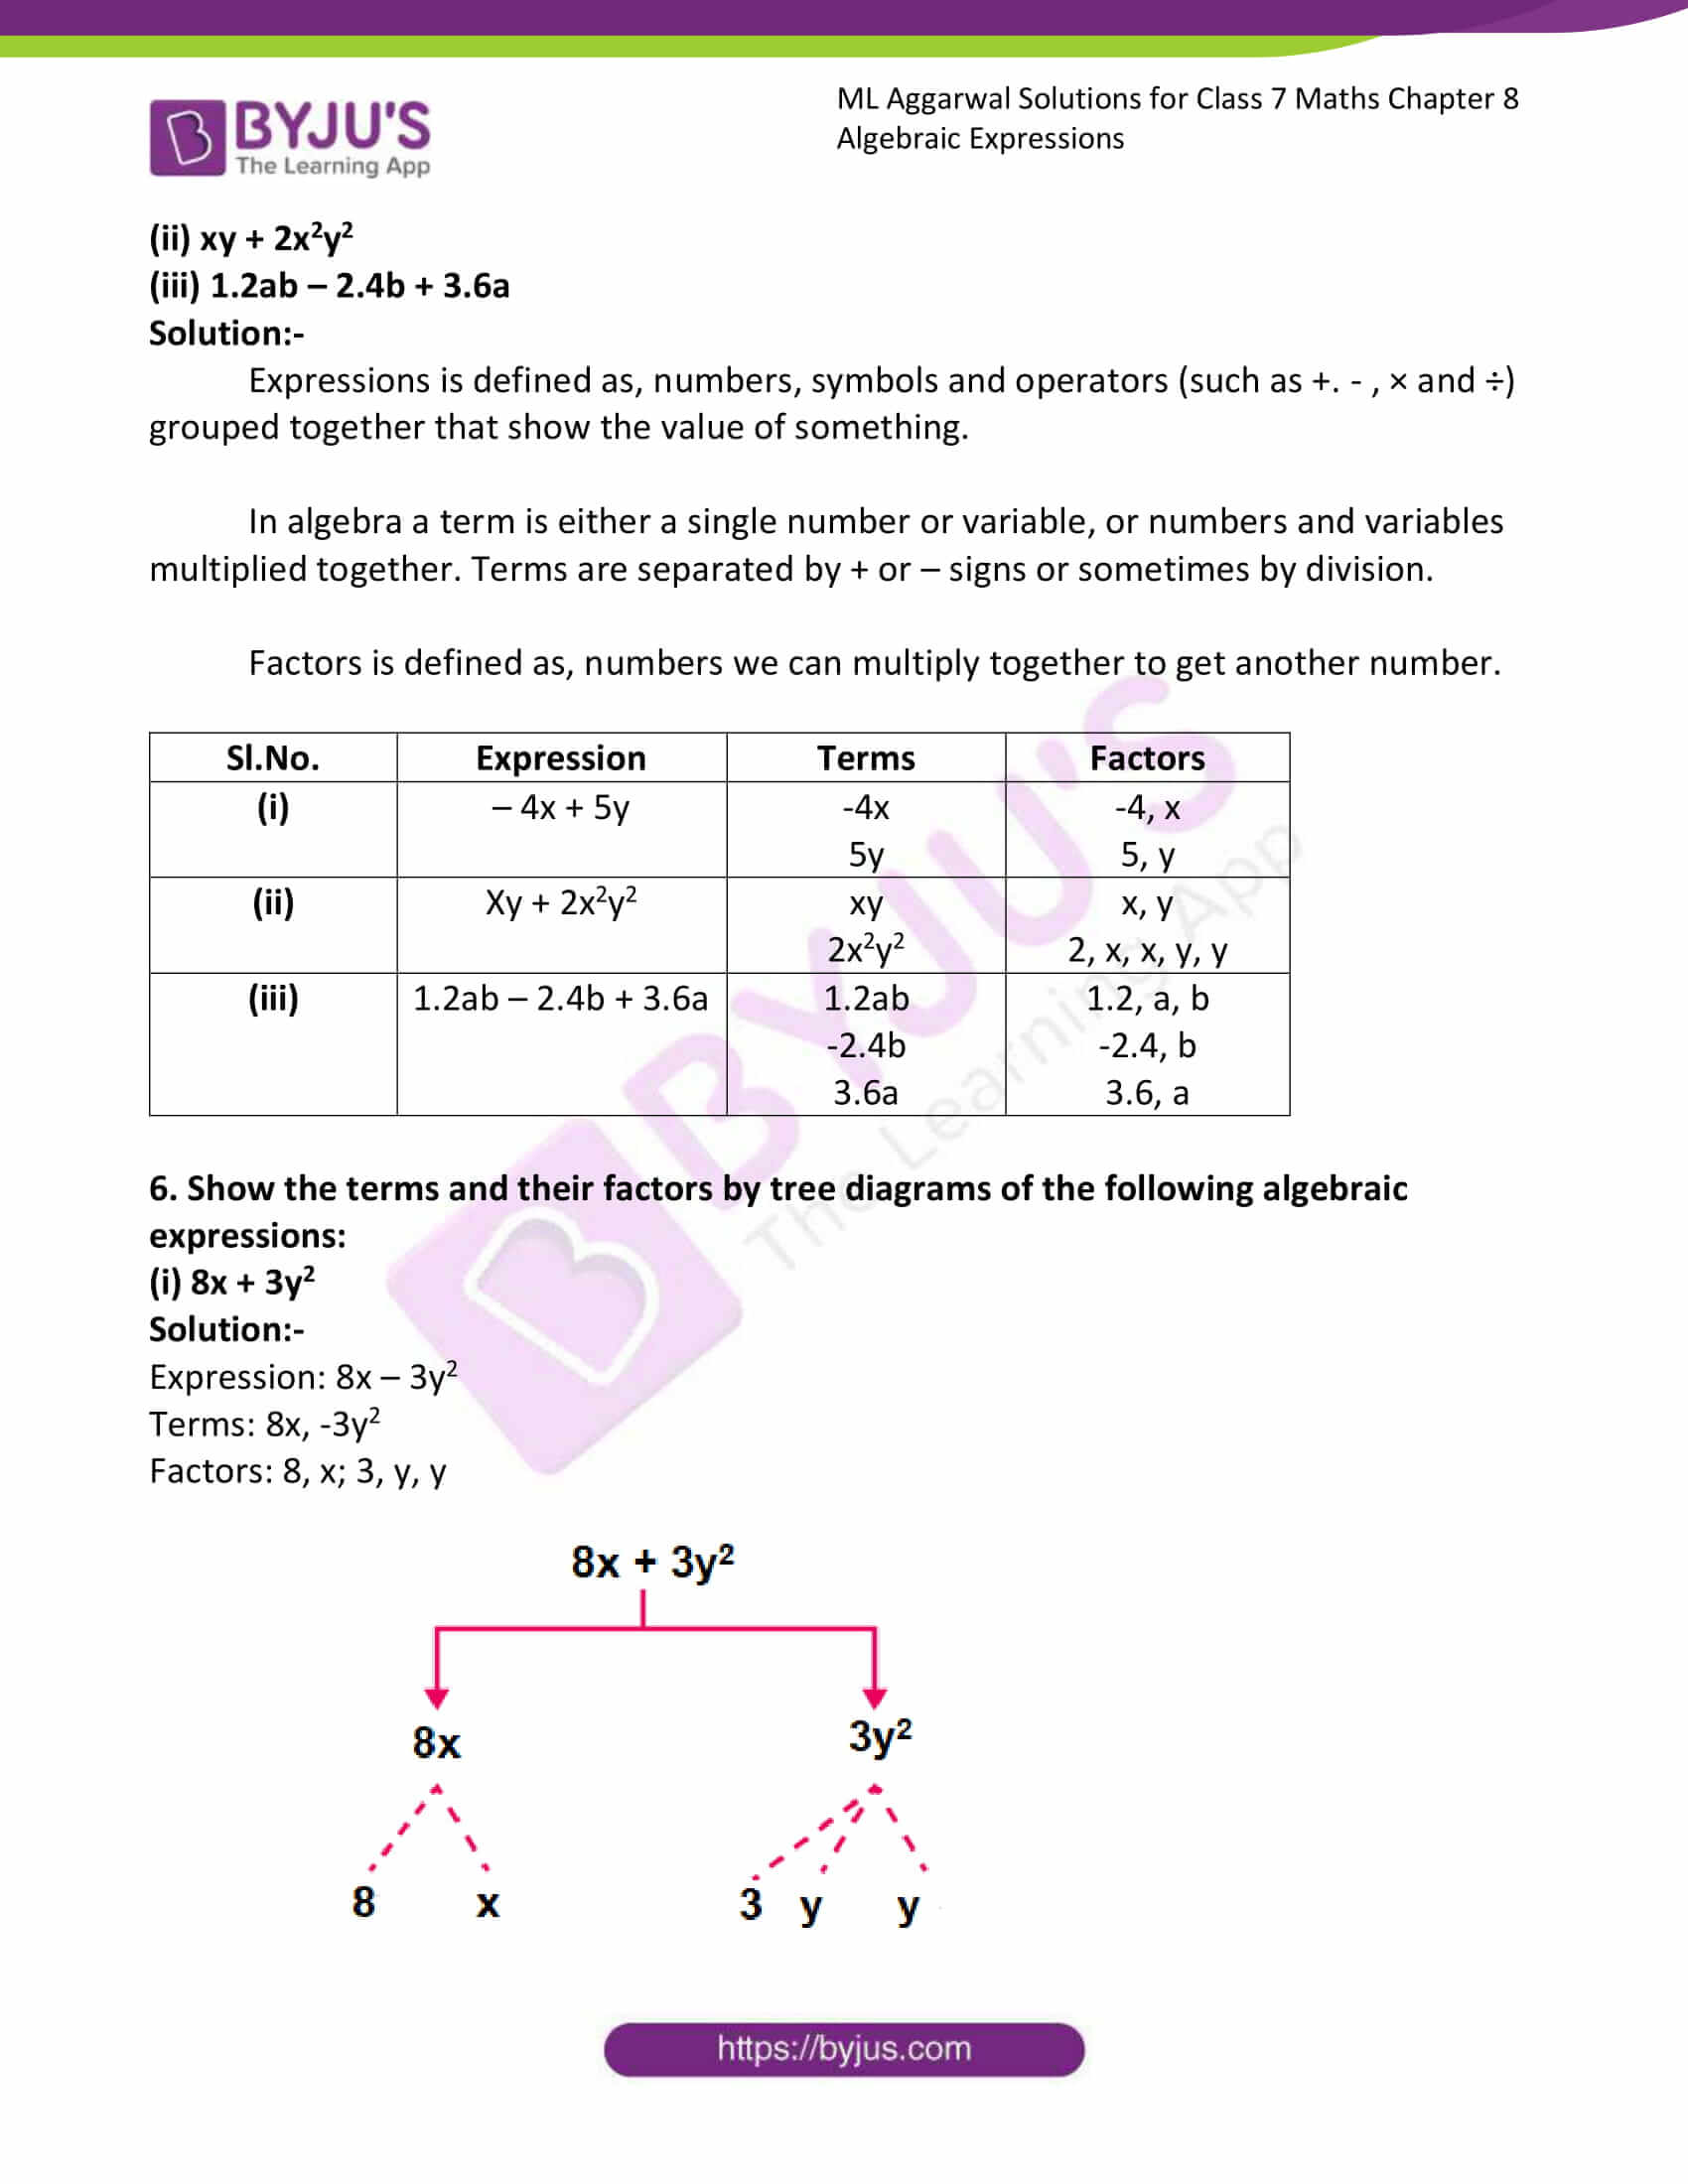 ml aggarwal sol class 7 maths chapter 8 3